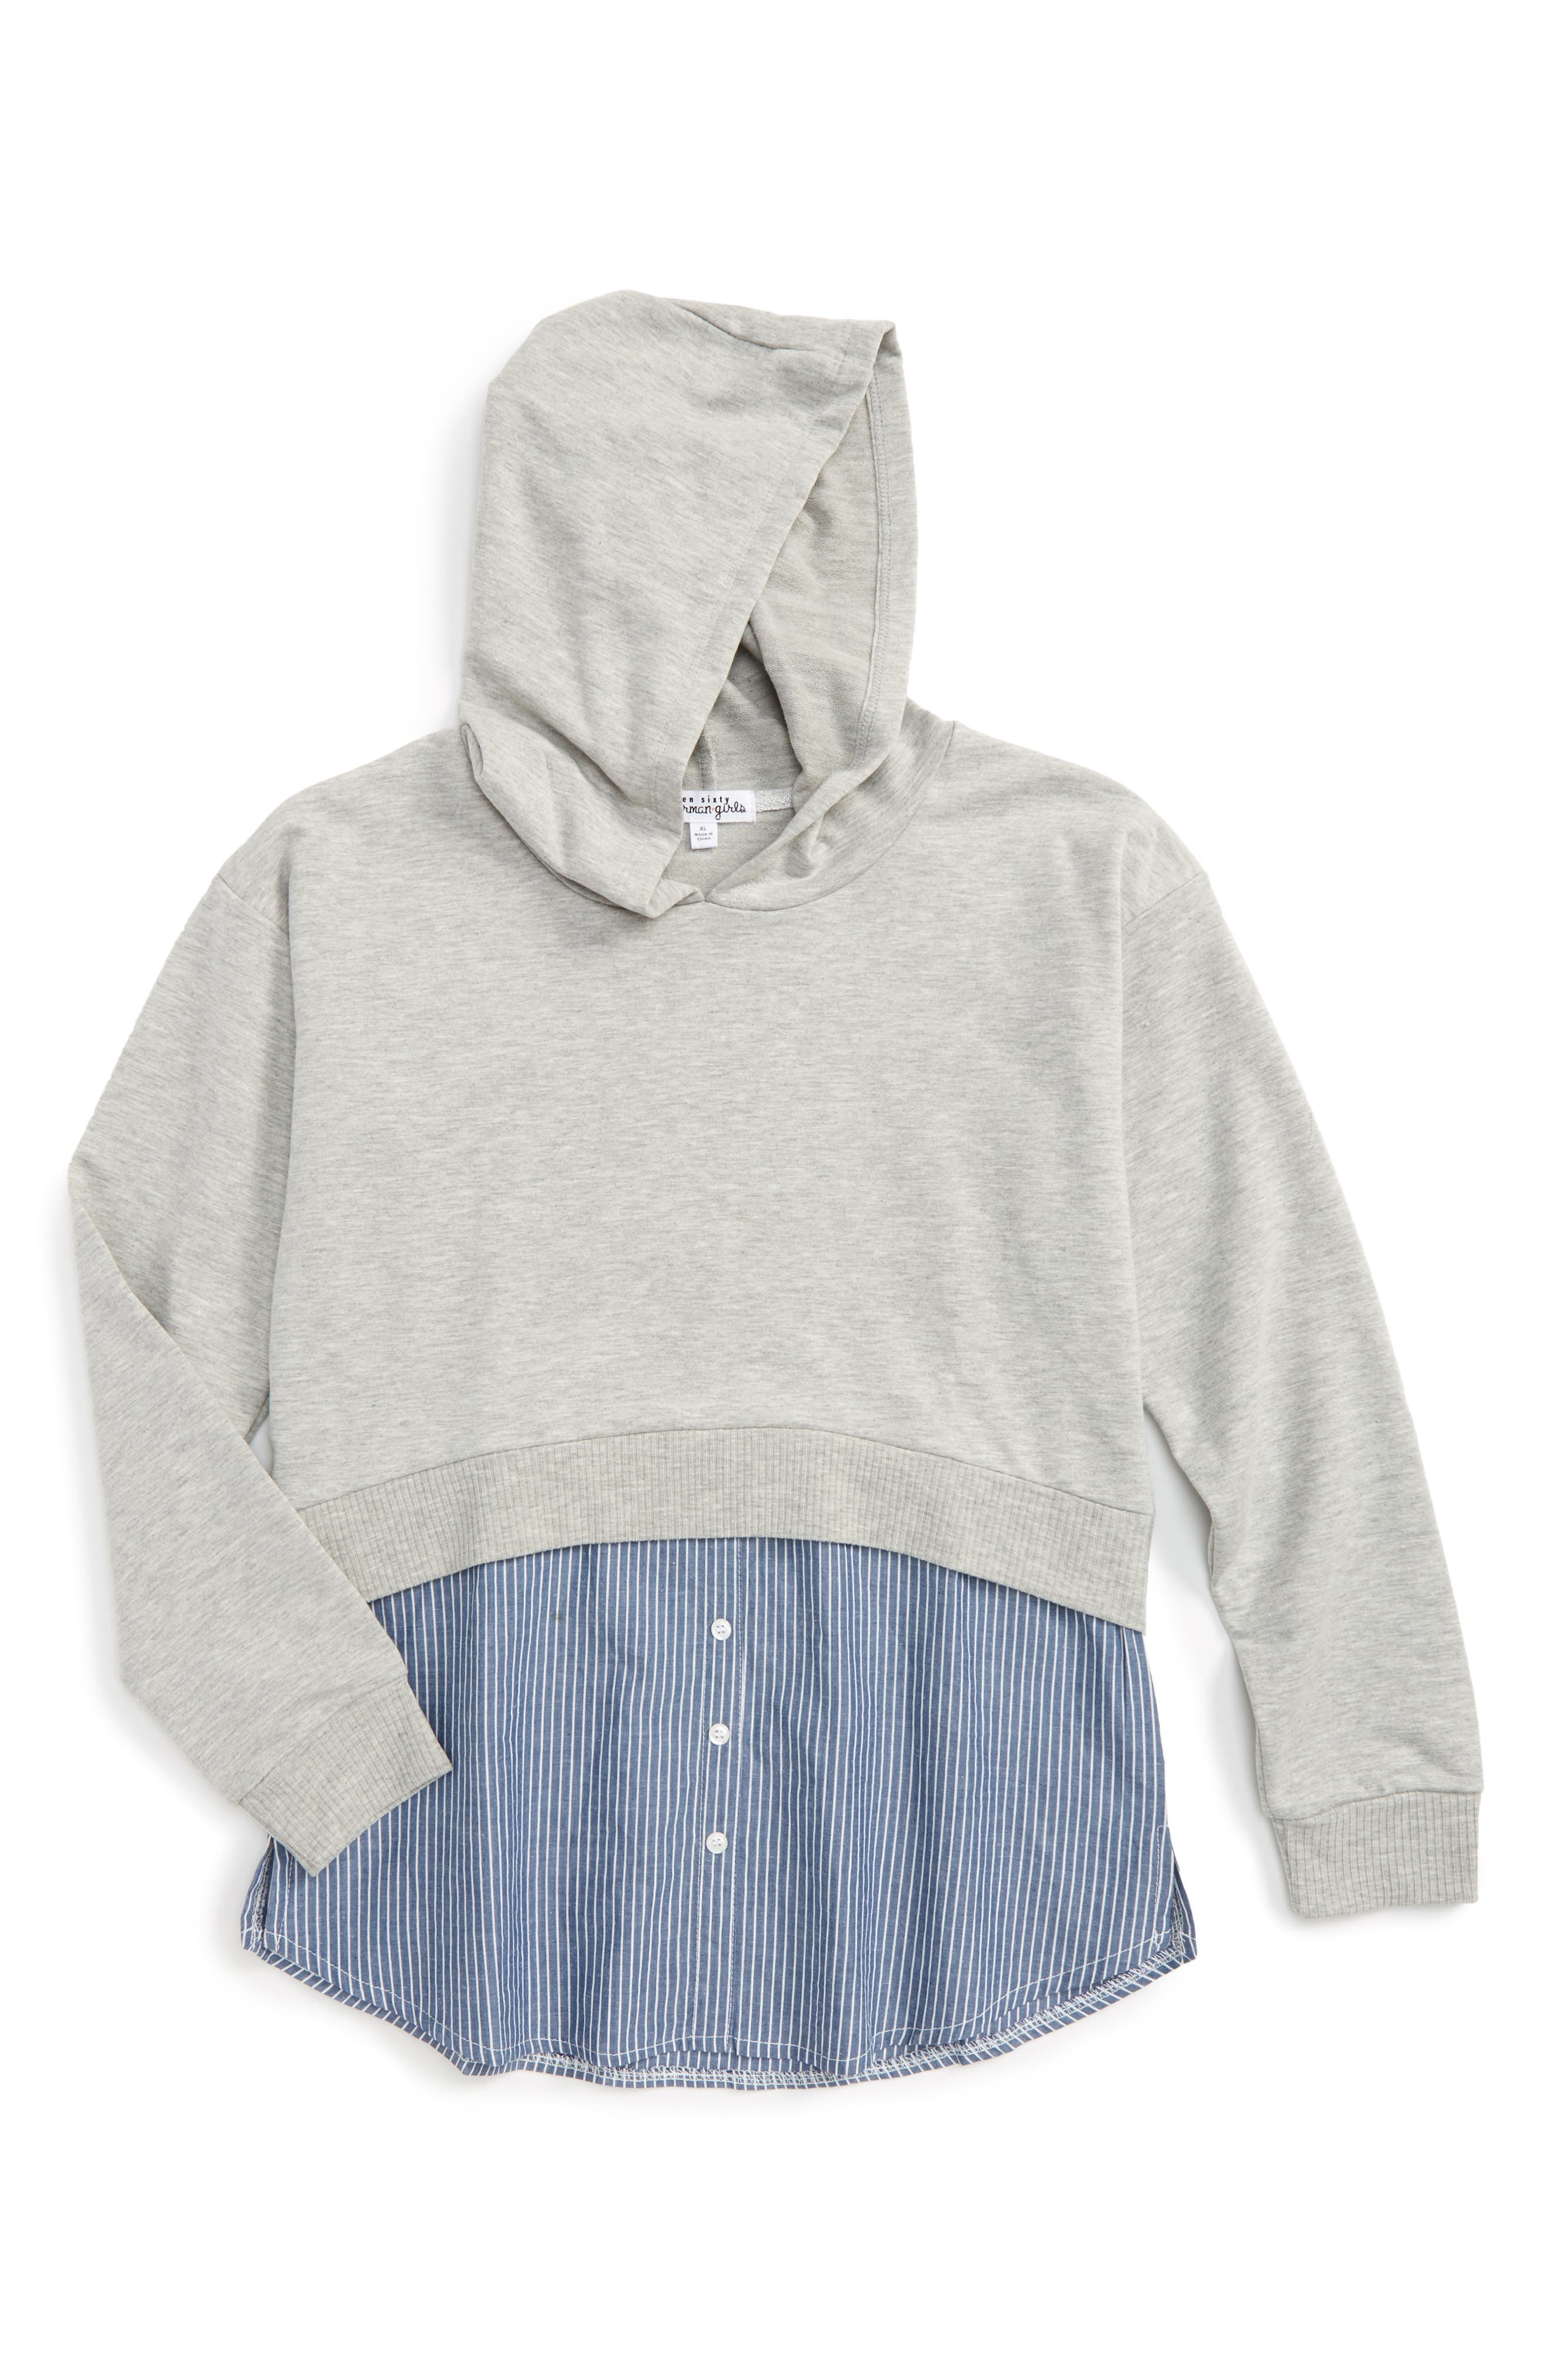 Layered Hoodie,                             Main thumbnail 1, color,                             Heather Grey/ Ivory Stripe